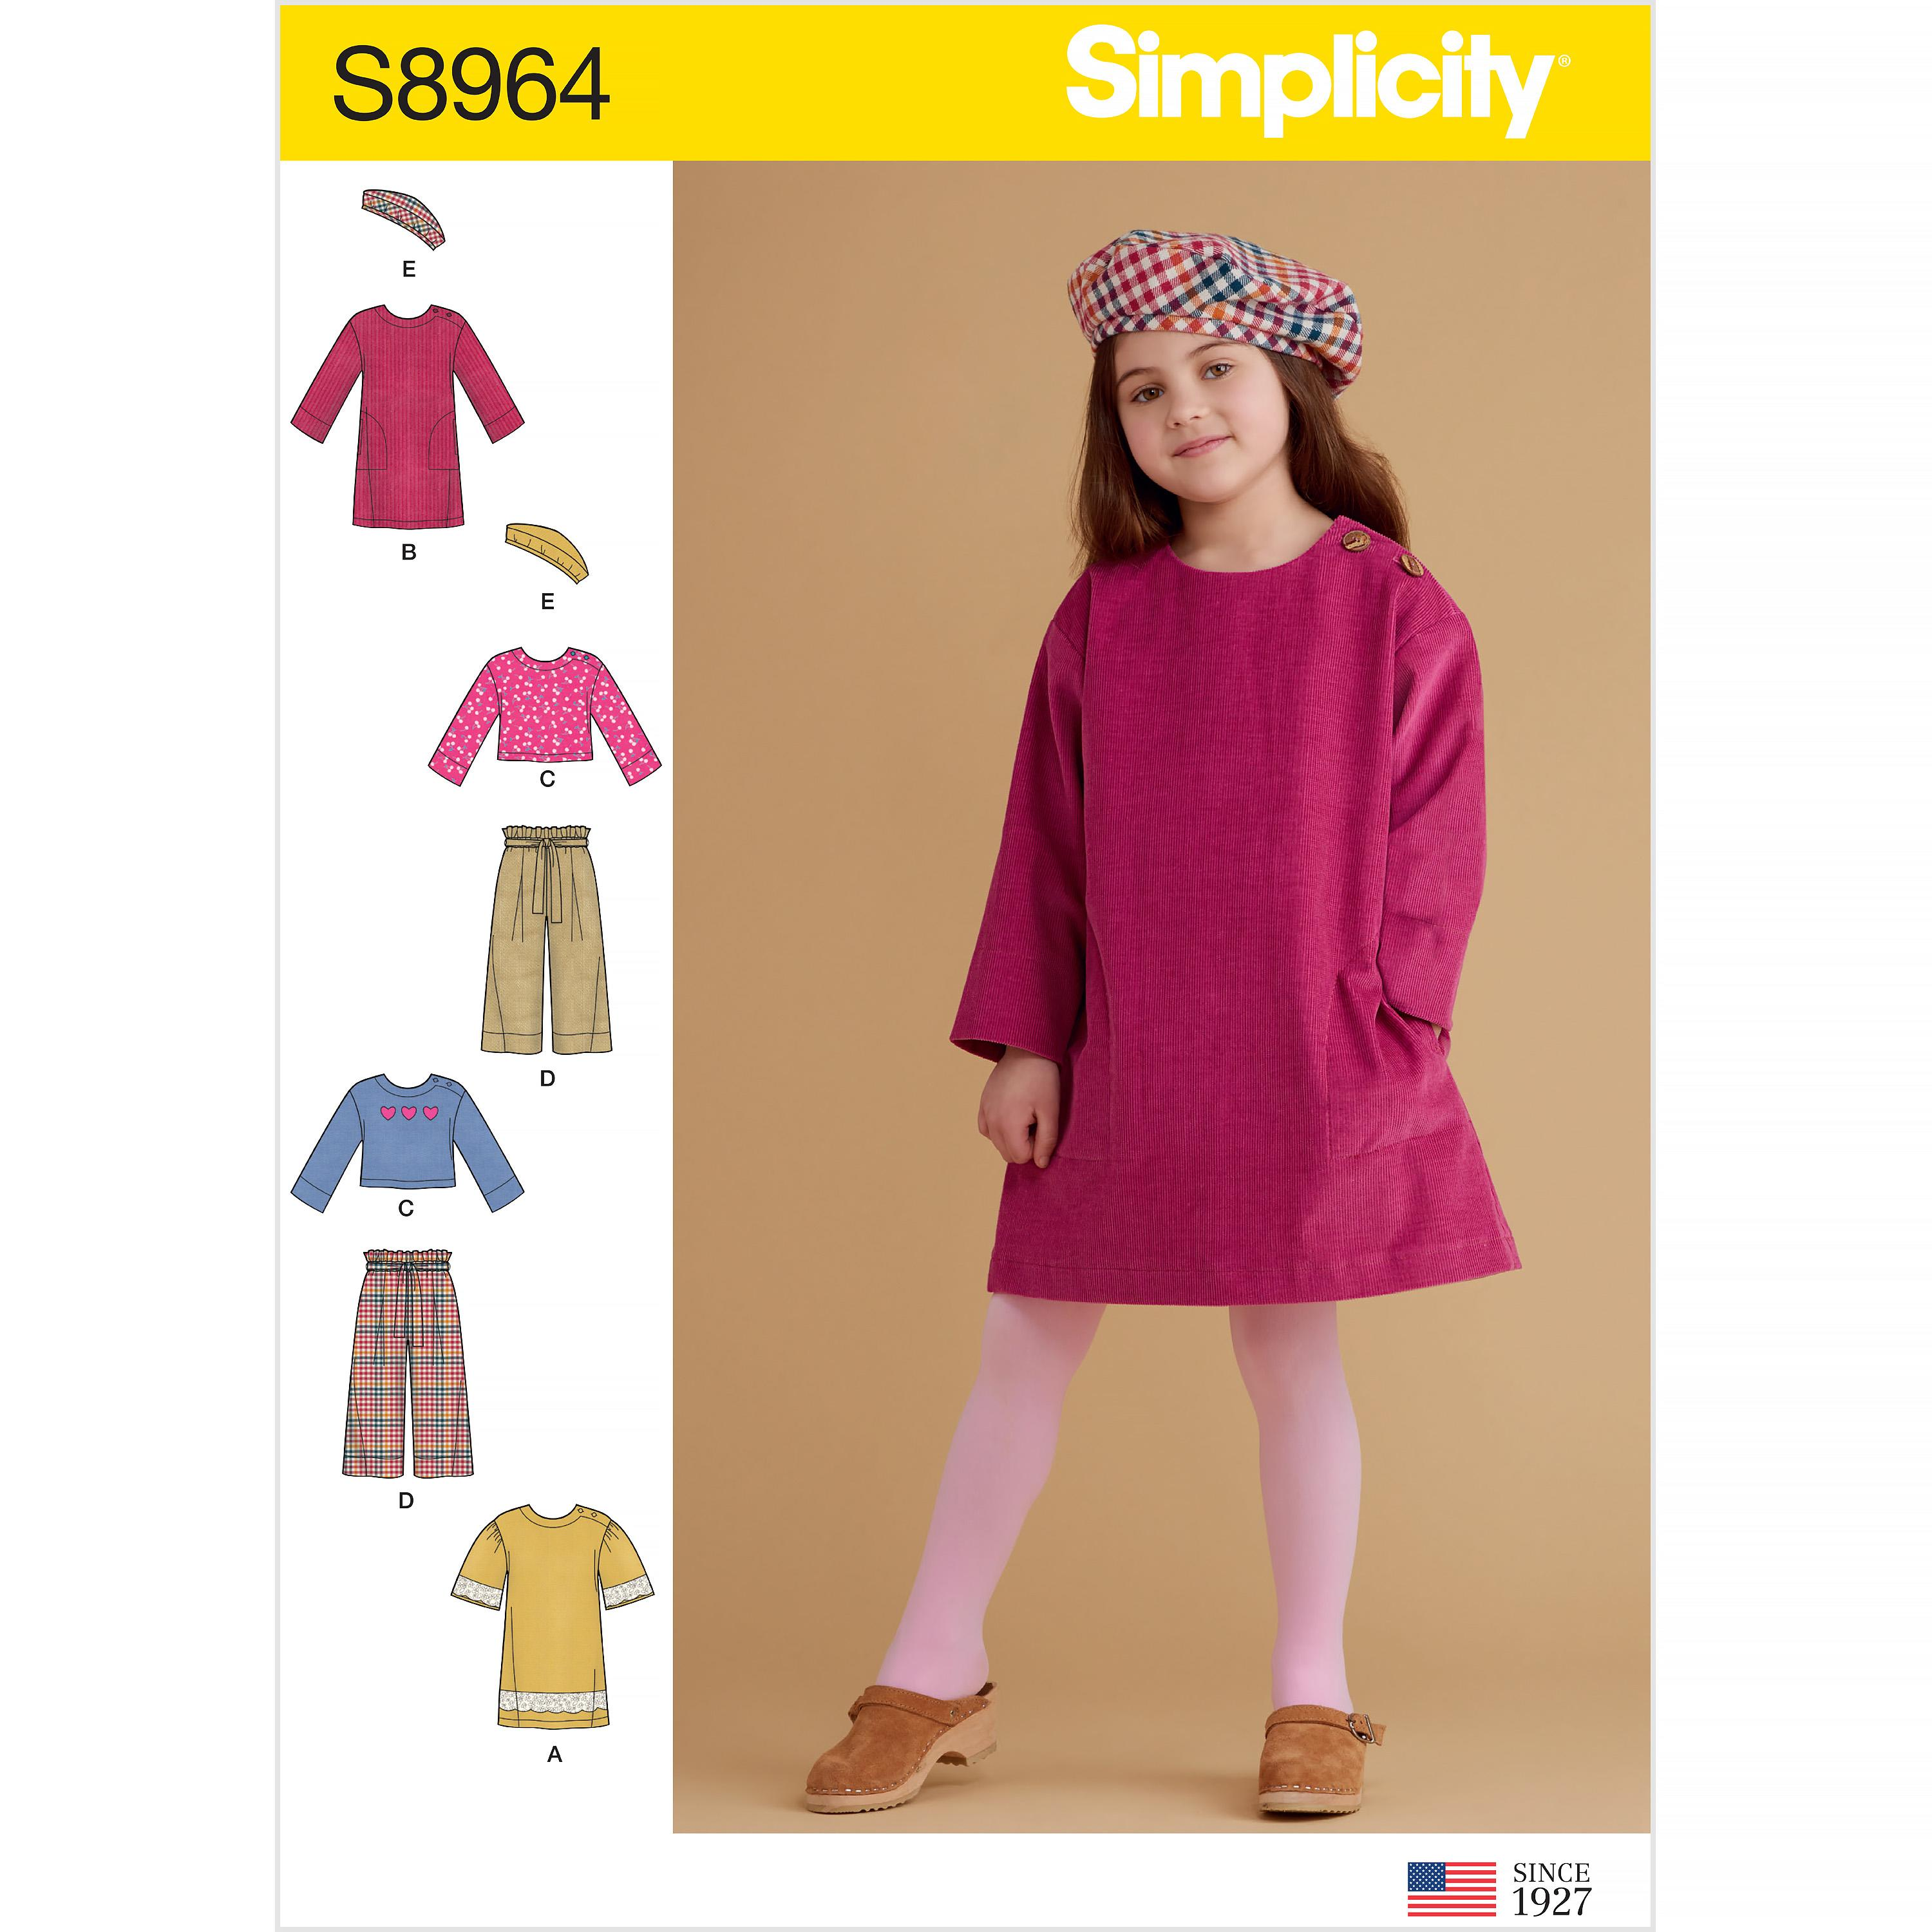 Simplicity S8964 Children's Dresses, Tops, Pants, and Hat